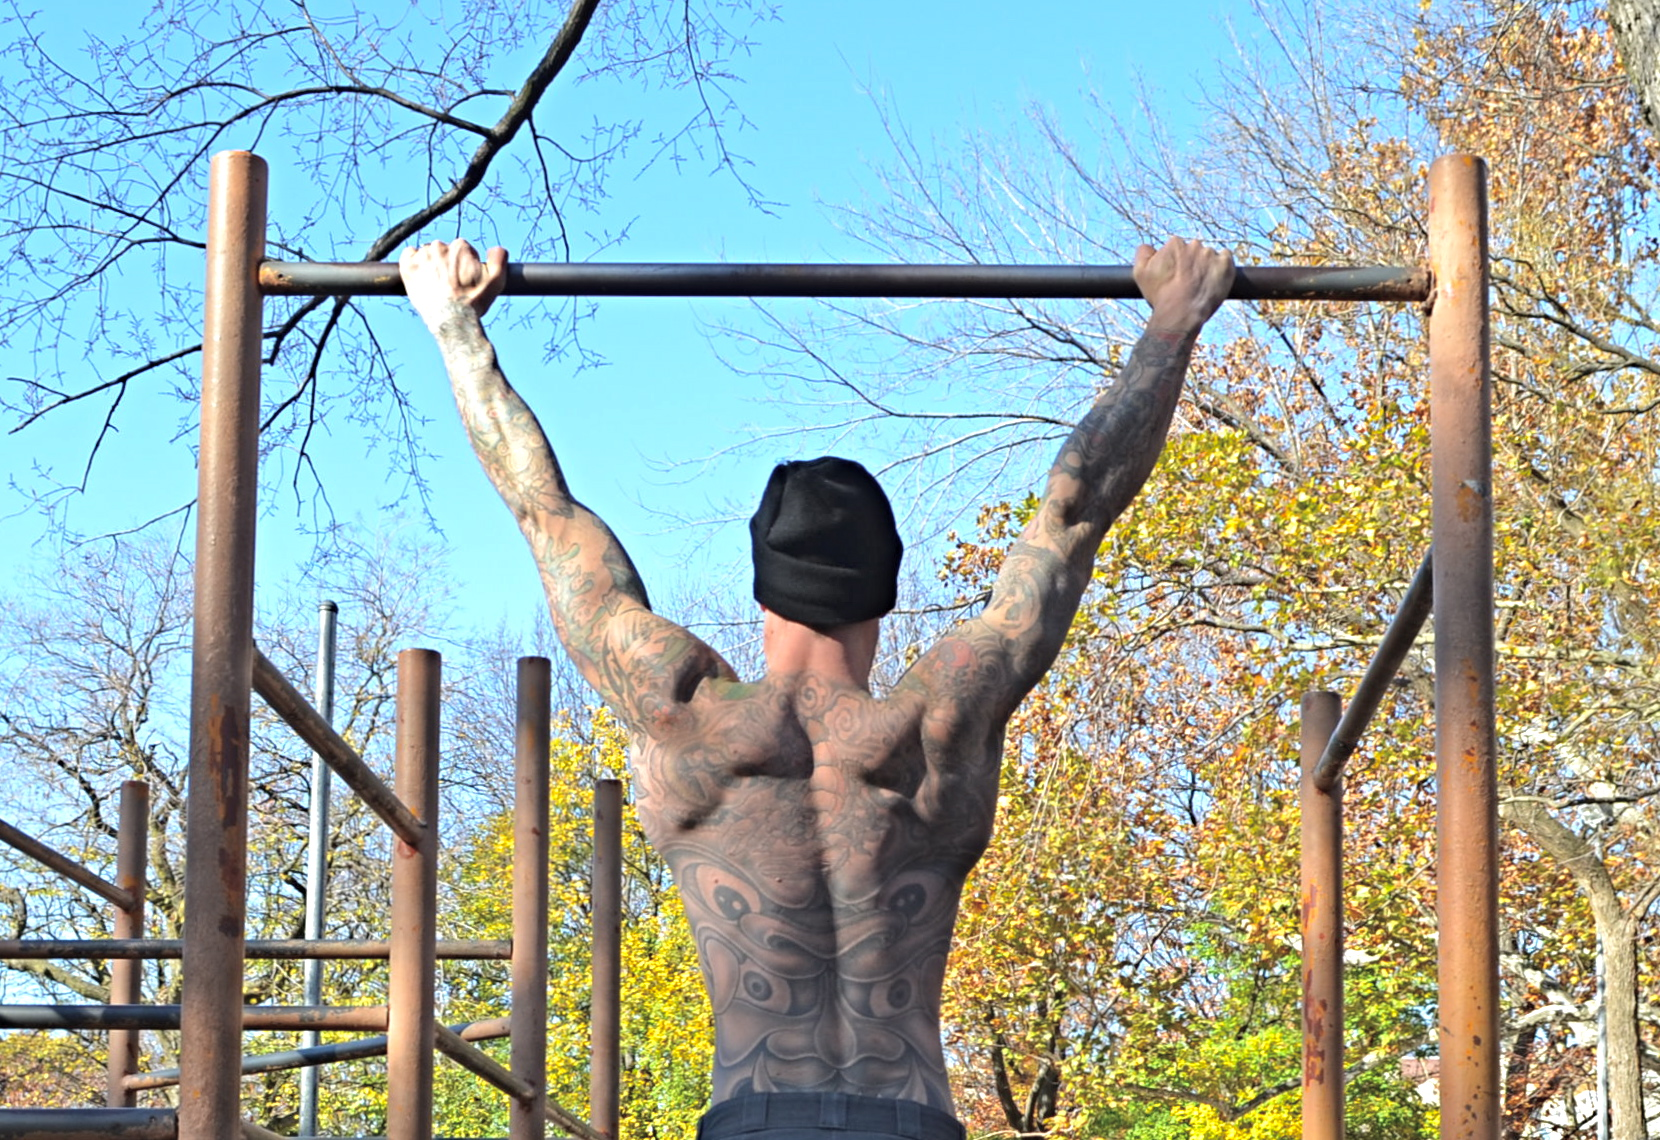 Al Kavadlo Backyard Pull Up Bar : The Importance of Pullup Bar Training  Marks Daily Apple